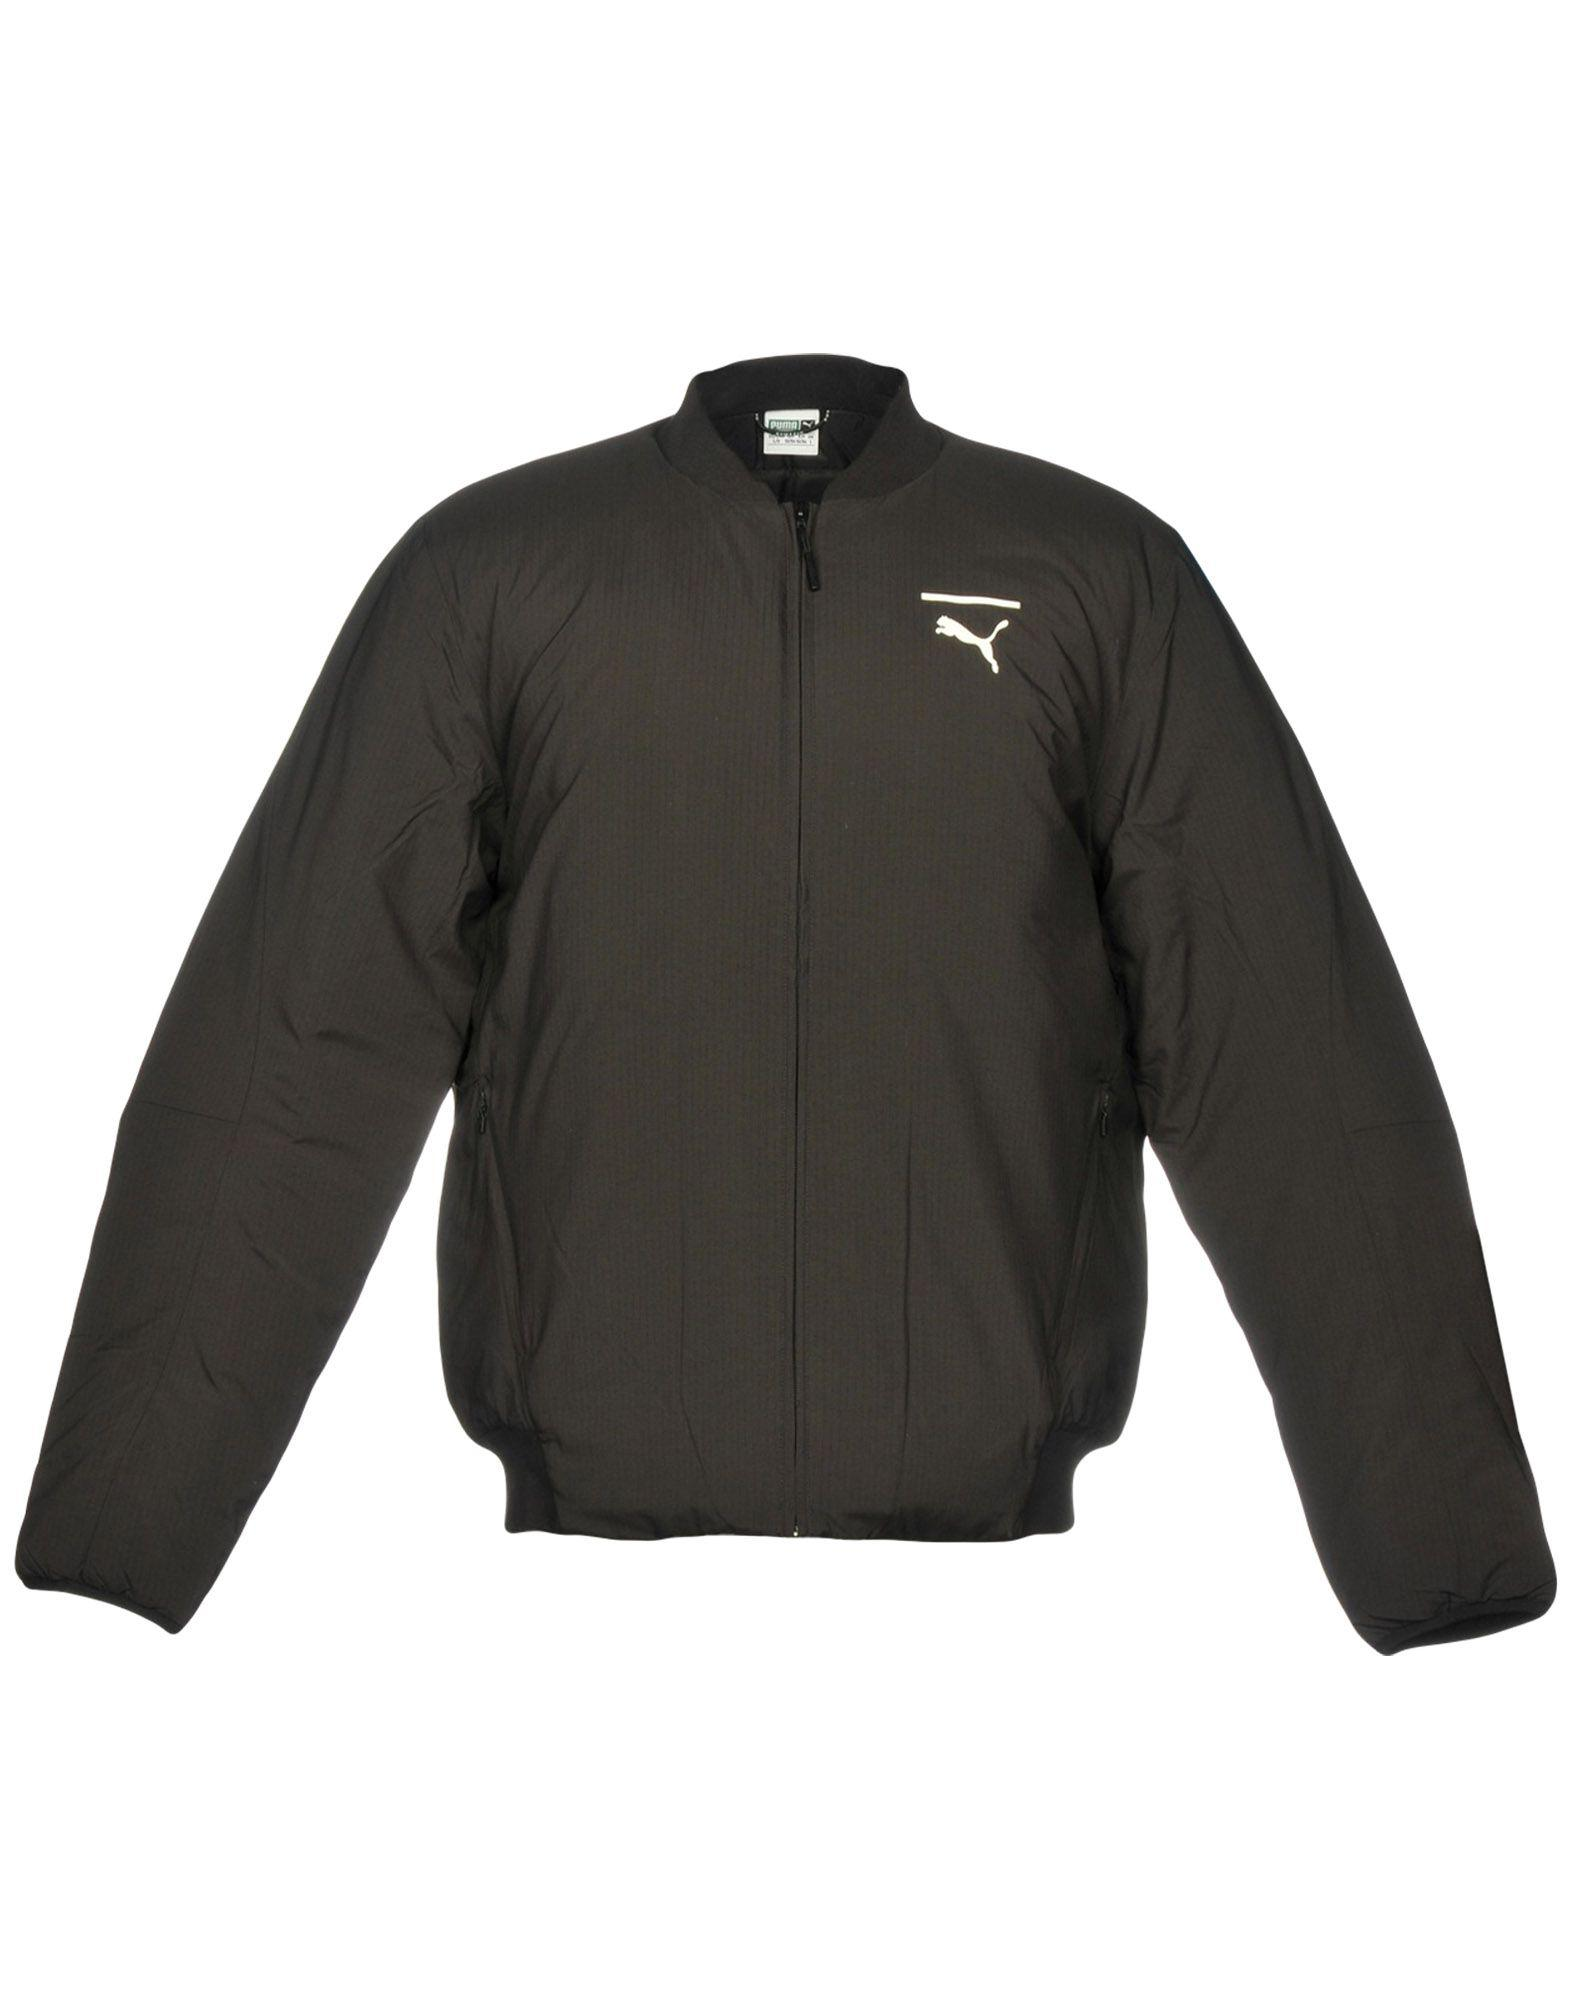 934c1b01fdf6 PUMA Jacket in Black for Men - Lyst